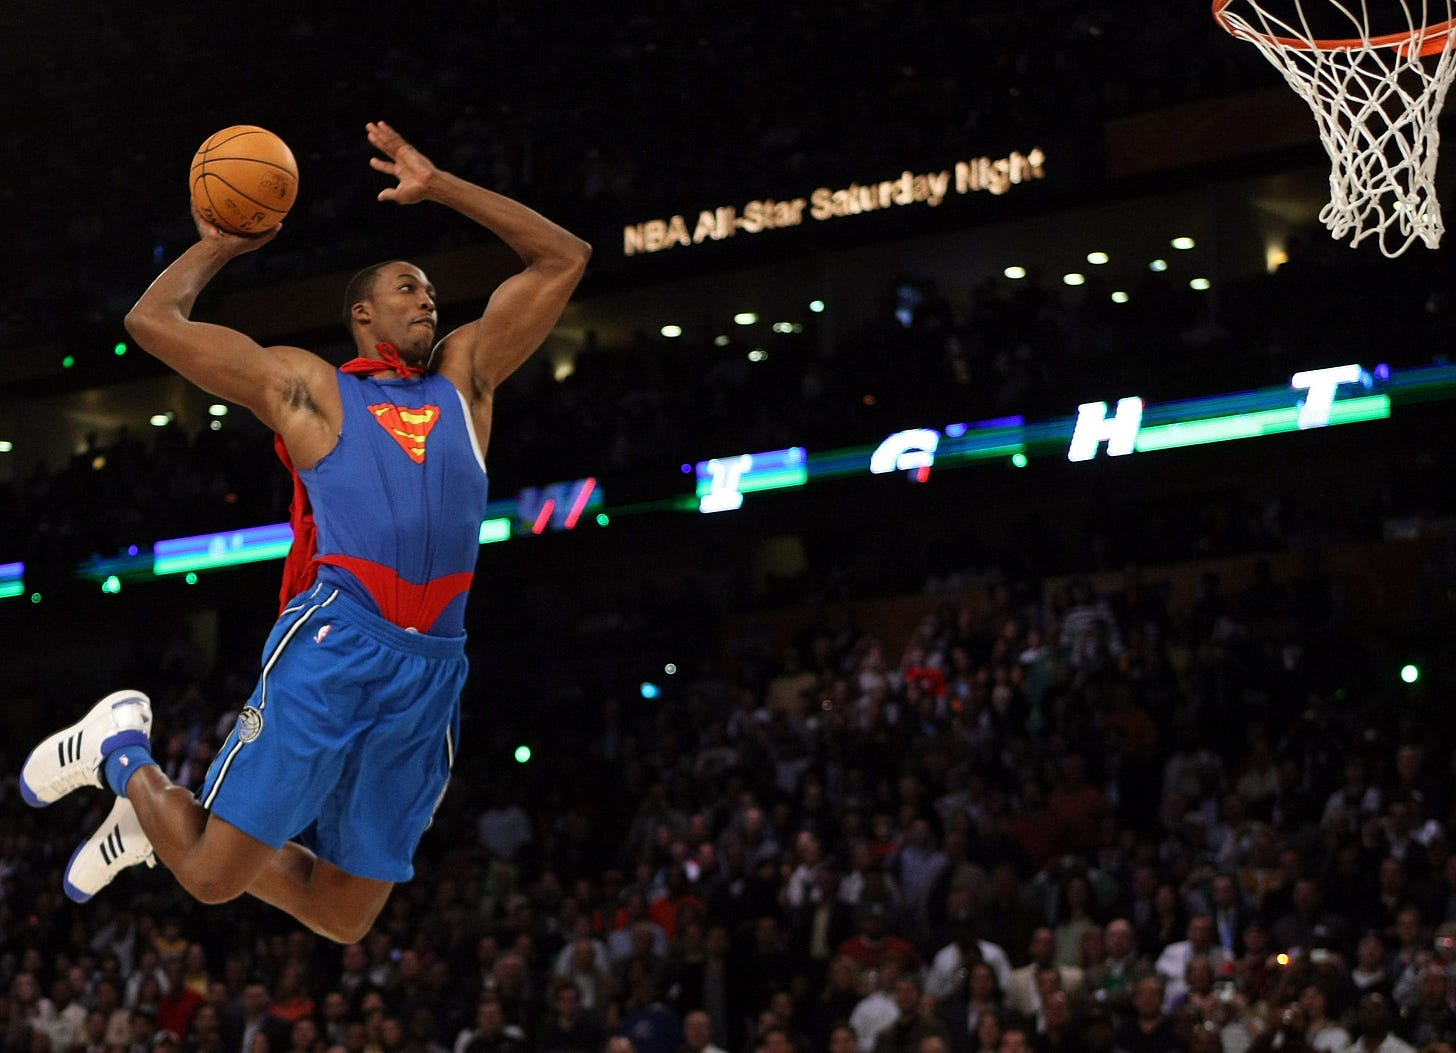 NBA Slam Dunk Contest 2020: Dwight Howard is back, but is Superman?